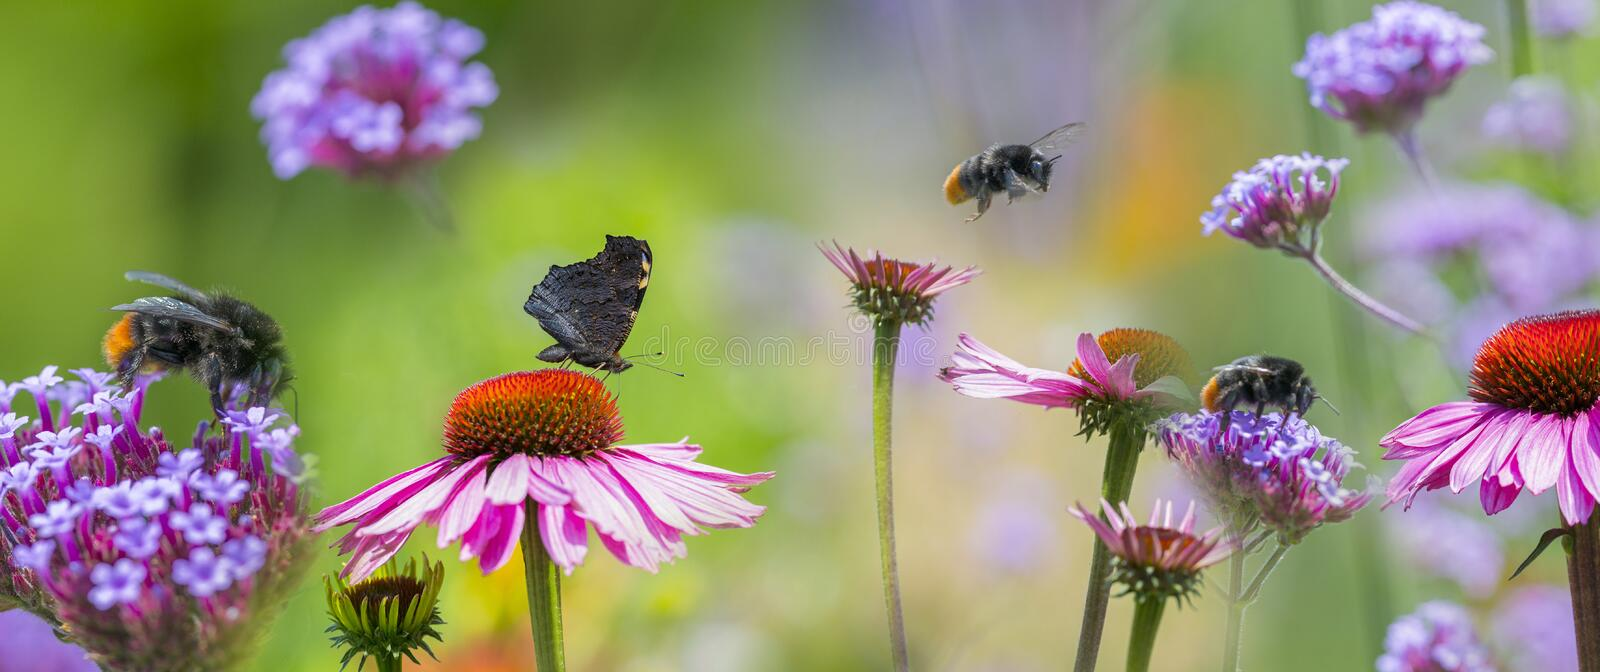 Garden flowers and butterfly and bumblebees close up. The panoramic view - garden flowers and butterfly and bumblebees close up royalty free stock photos